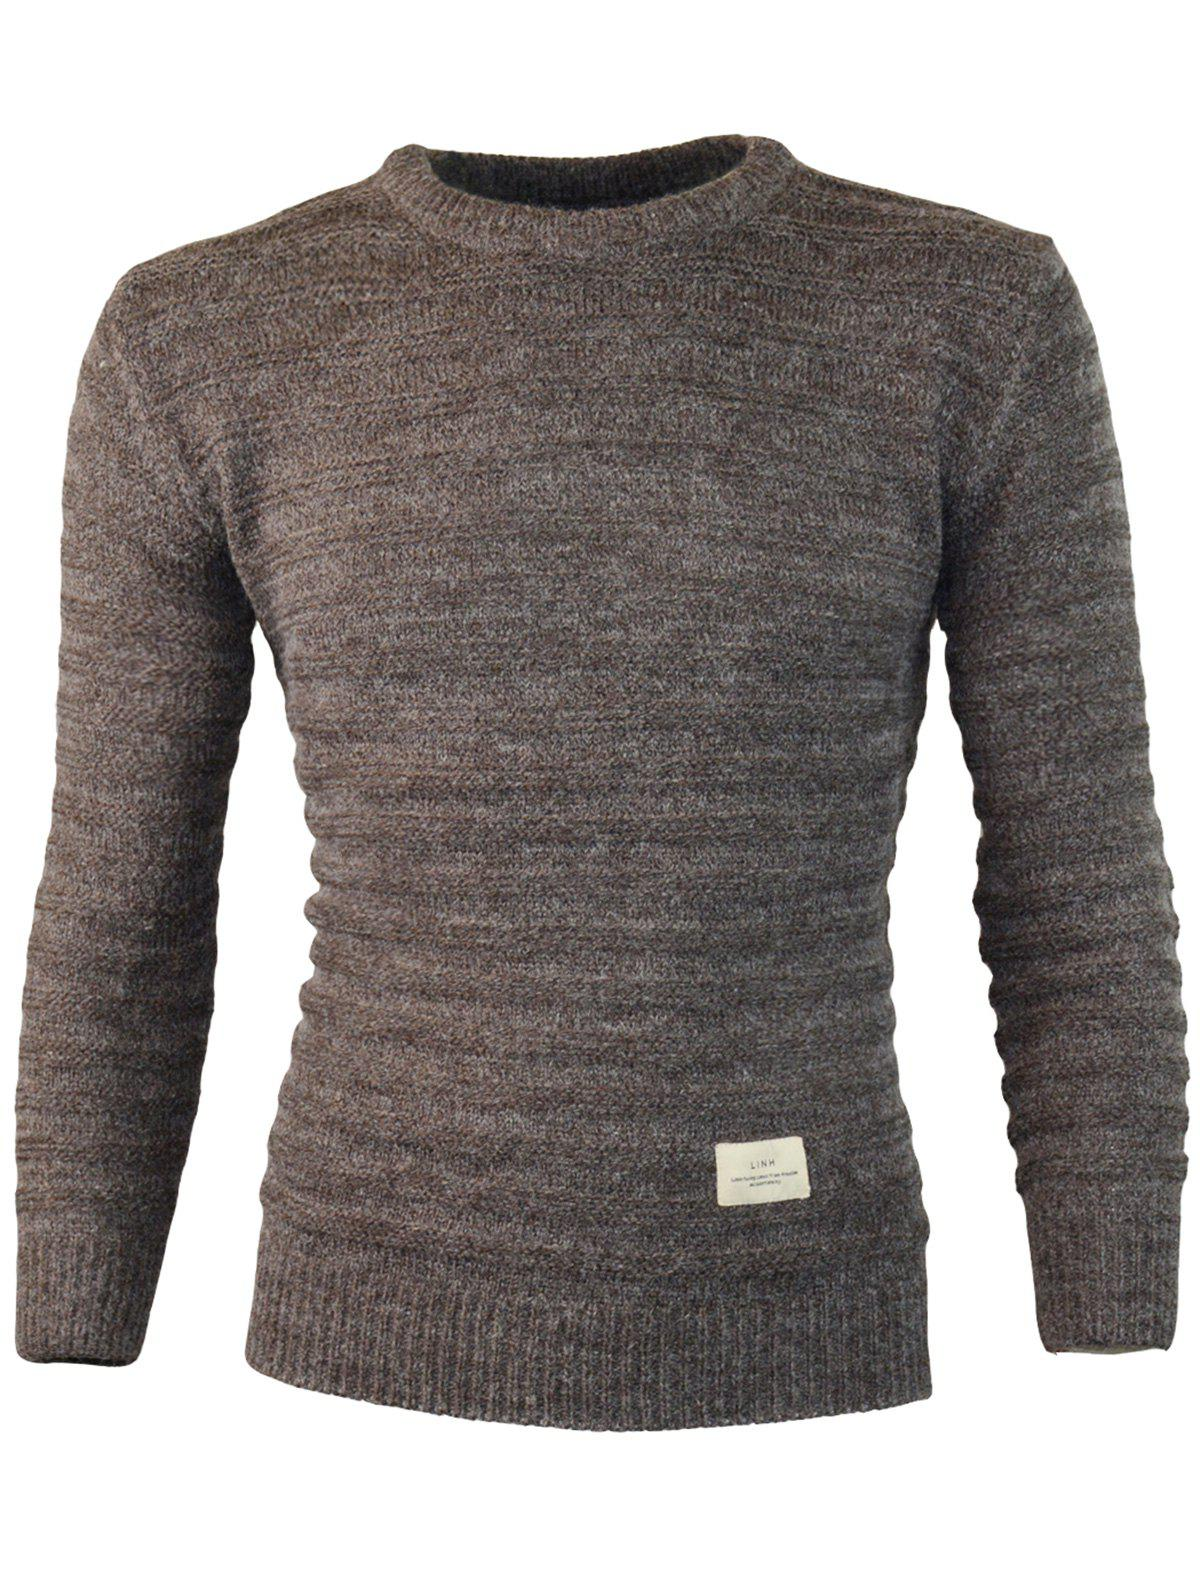 Outfit Patch Design Crew Neck Jumper Sweater